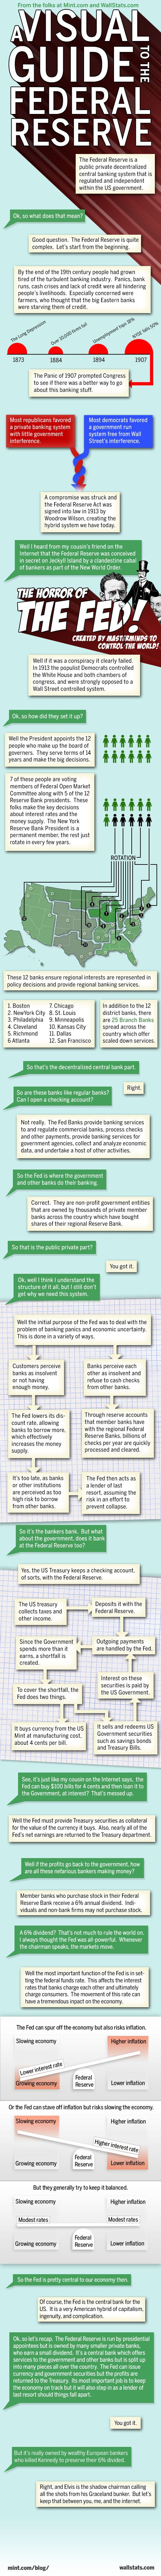 This infographic helps to explain how the Federal Reserve System Really works.  It will be useful when planning for this lesson.